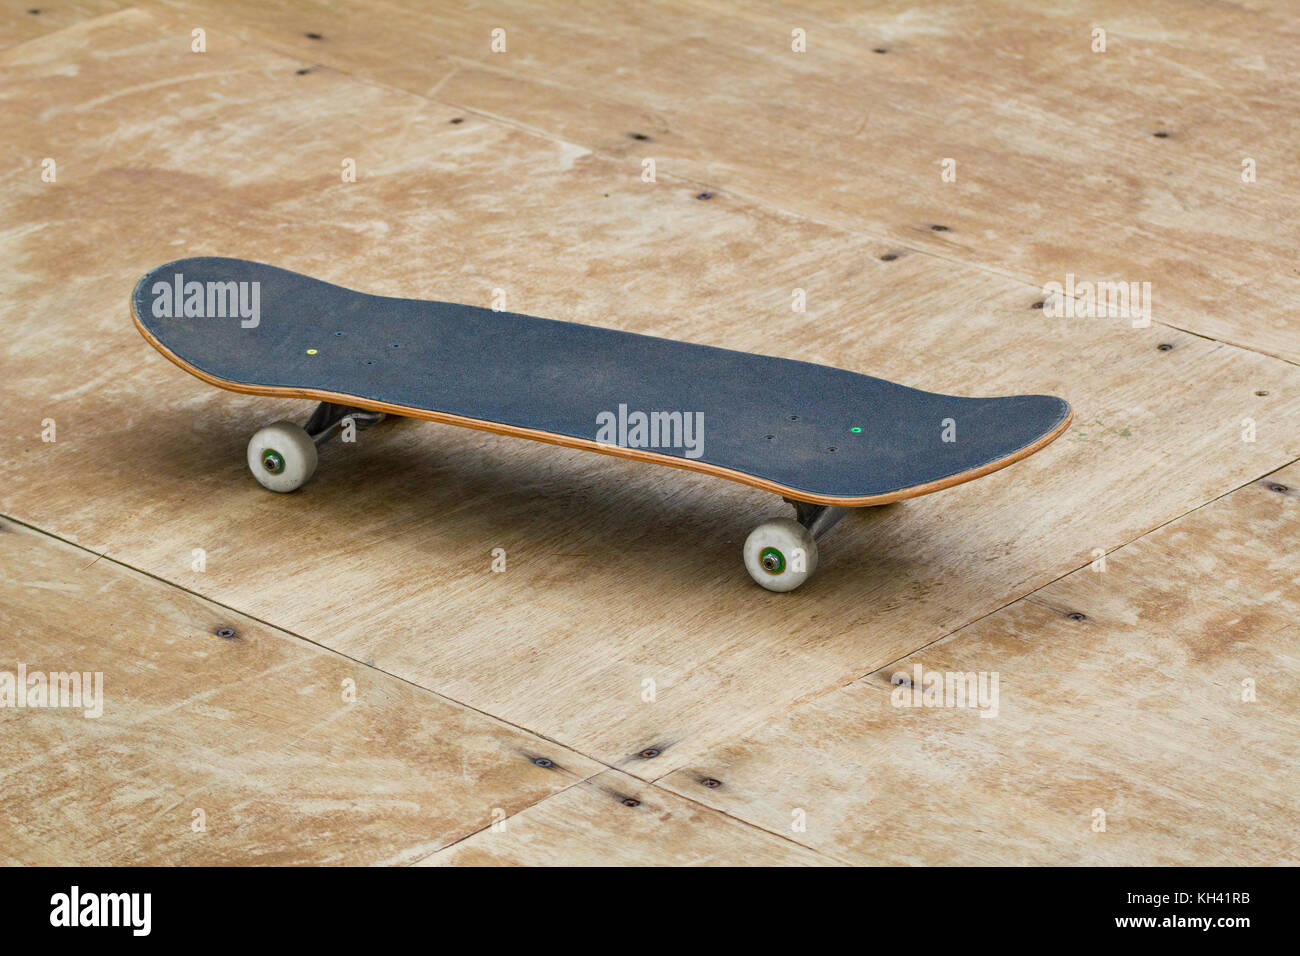 Tony Hawk Circuit Board Ramp Ask Answer Wiring Diagram Buy Hexbug Boards Remote Control Skateboard Assorted Professional Skateboarder Stock Photos Images Alamy Space Station Model Power